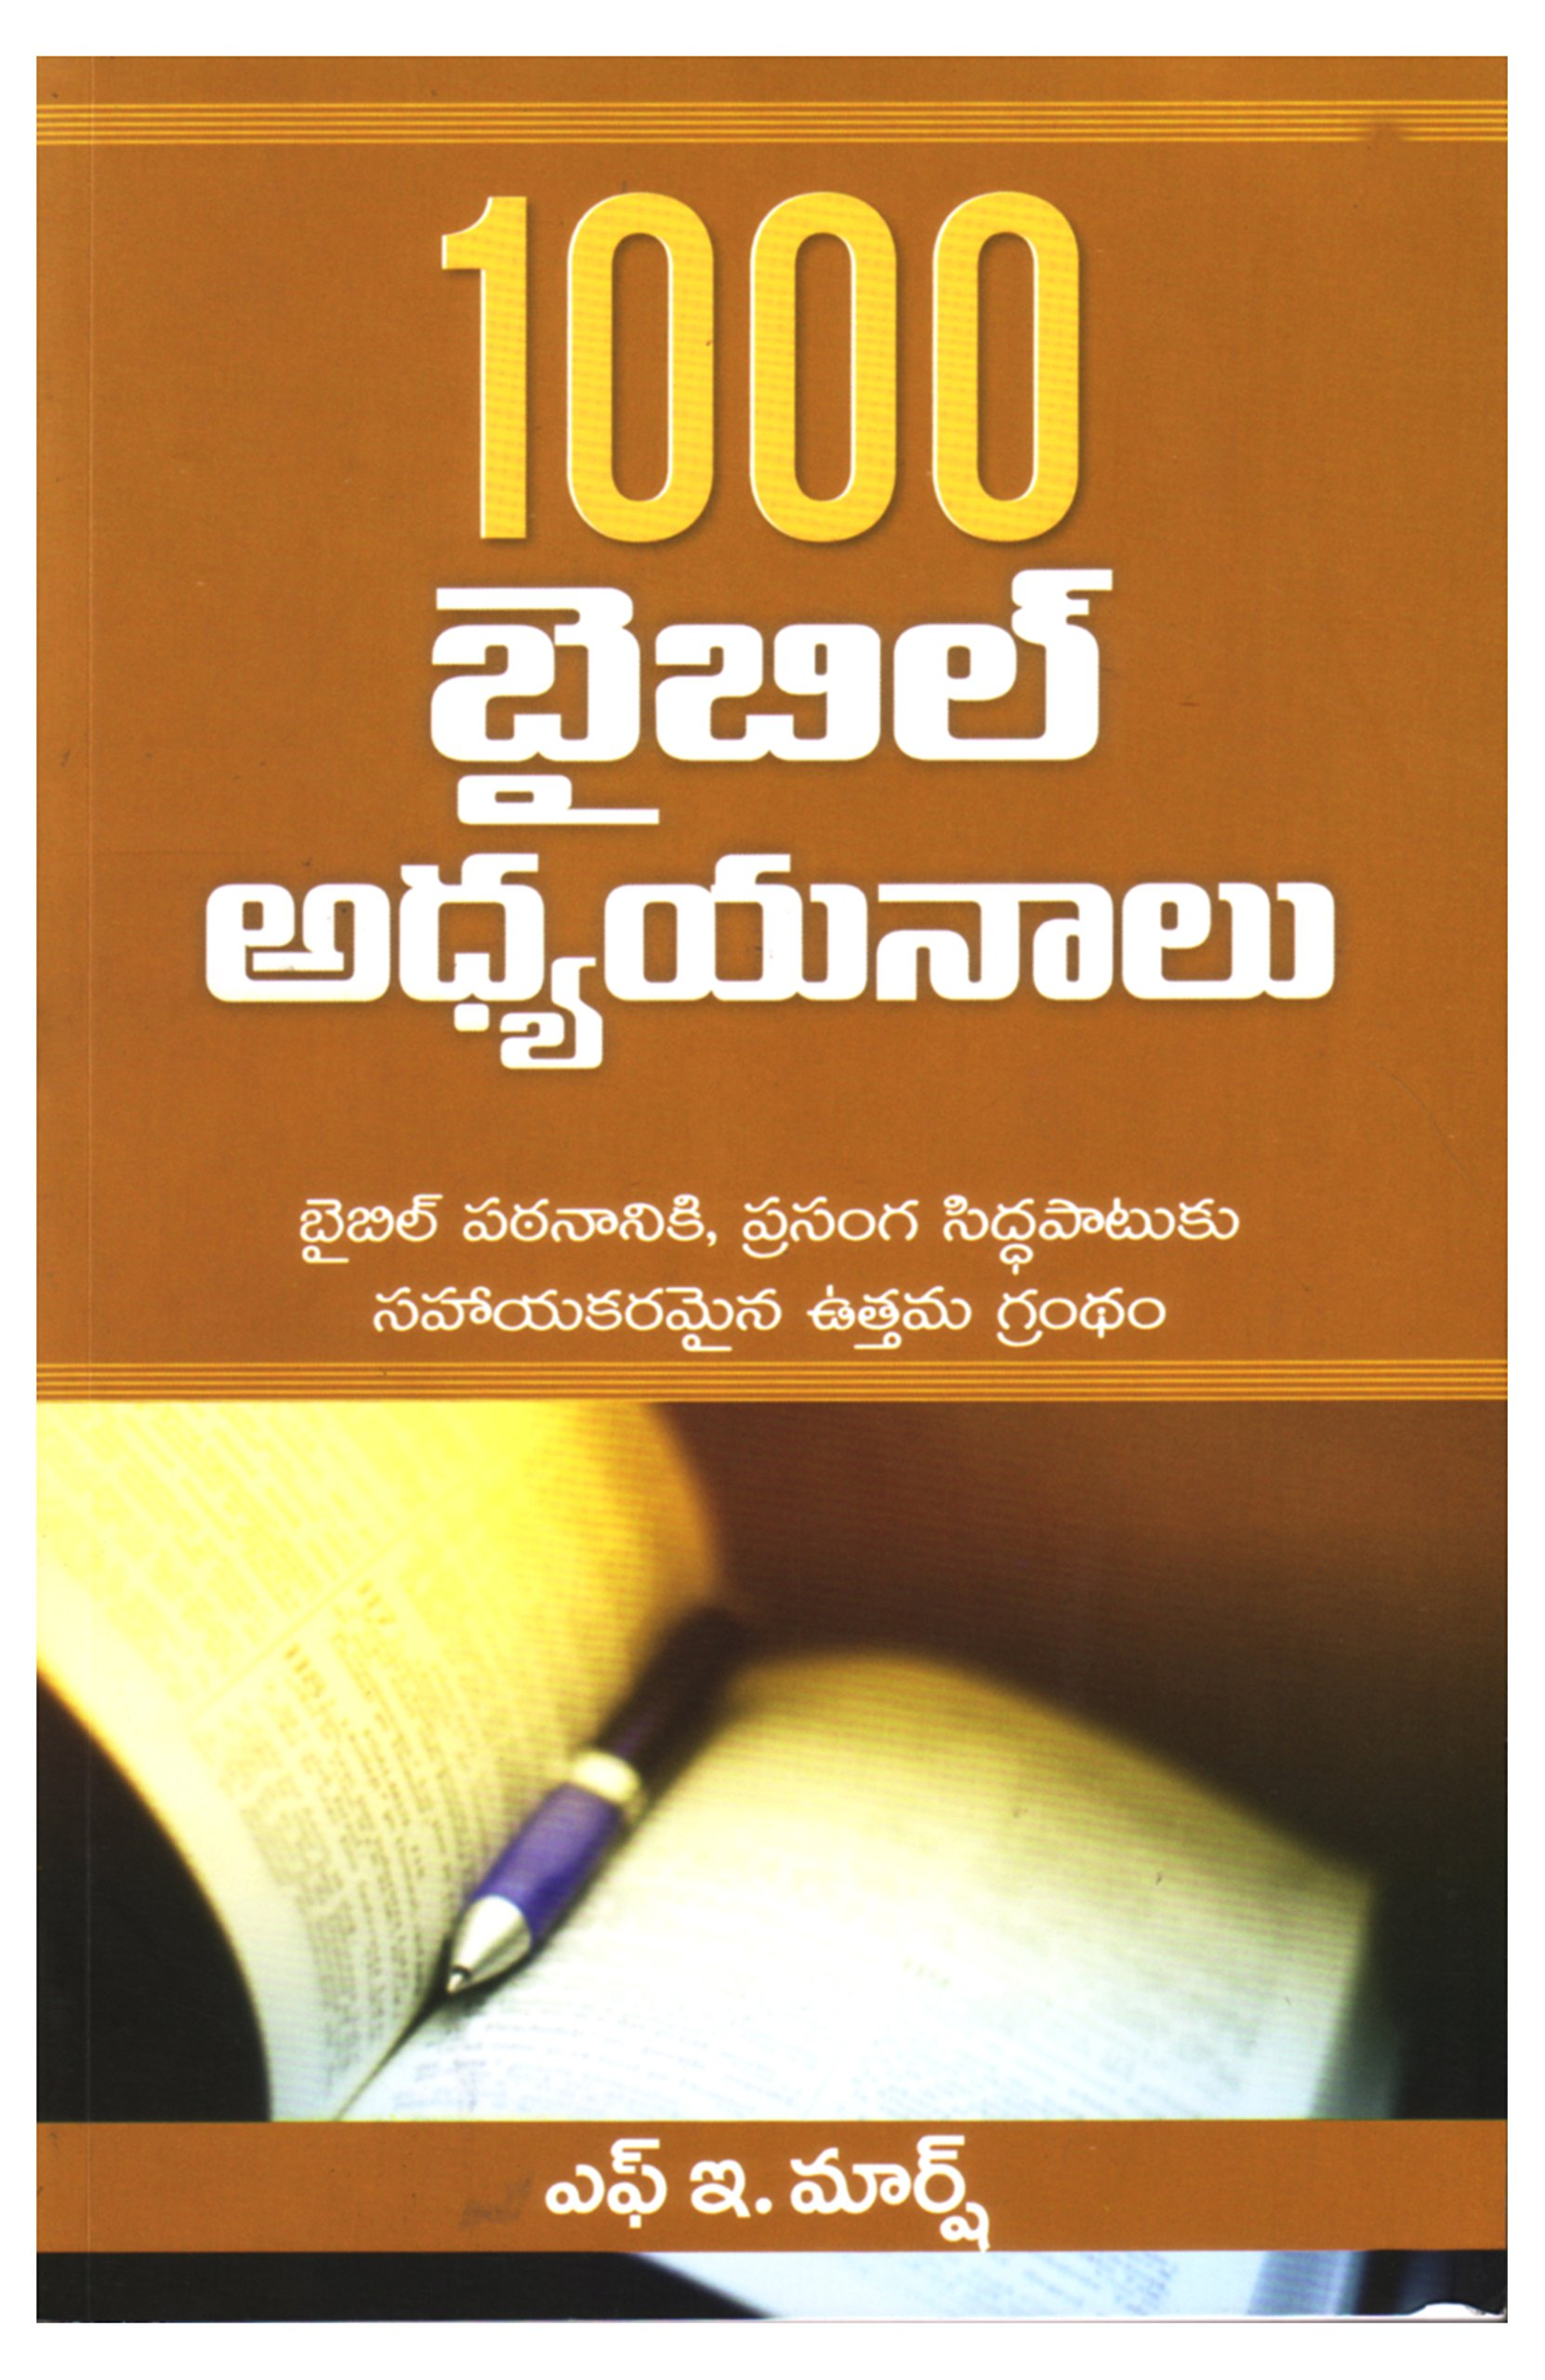 Buy 1000 Bible Study Outlines (Telugu ) Book Online at Low Prices in India  | 1000 Bible Study Outlines (Telugu ) Reviews & Ratings - Amazon.in